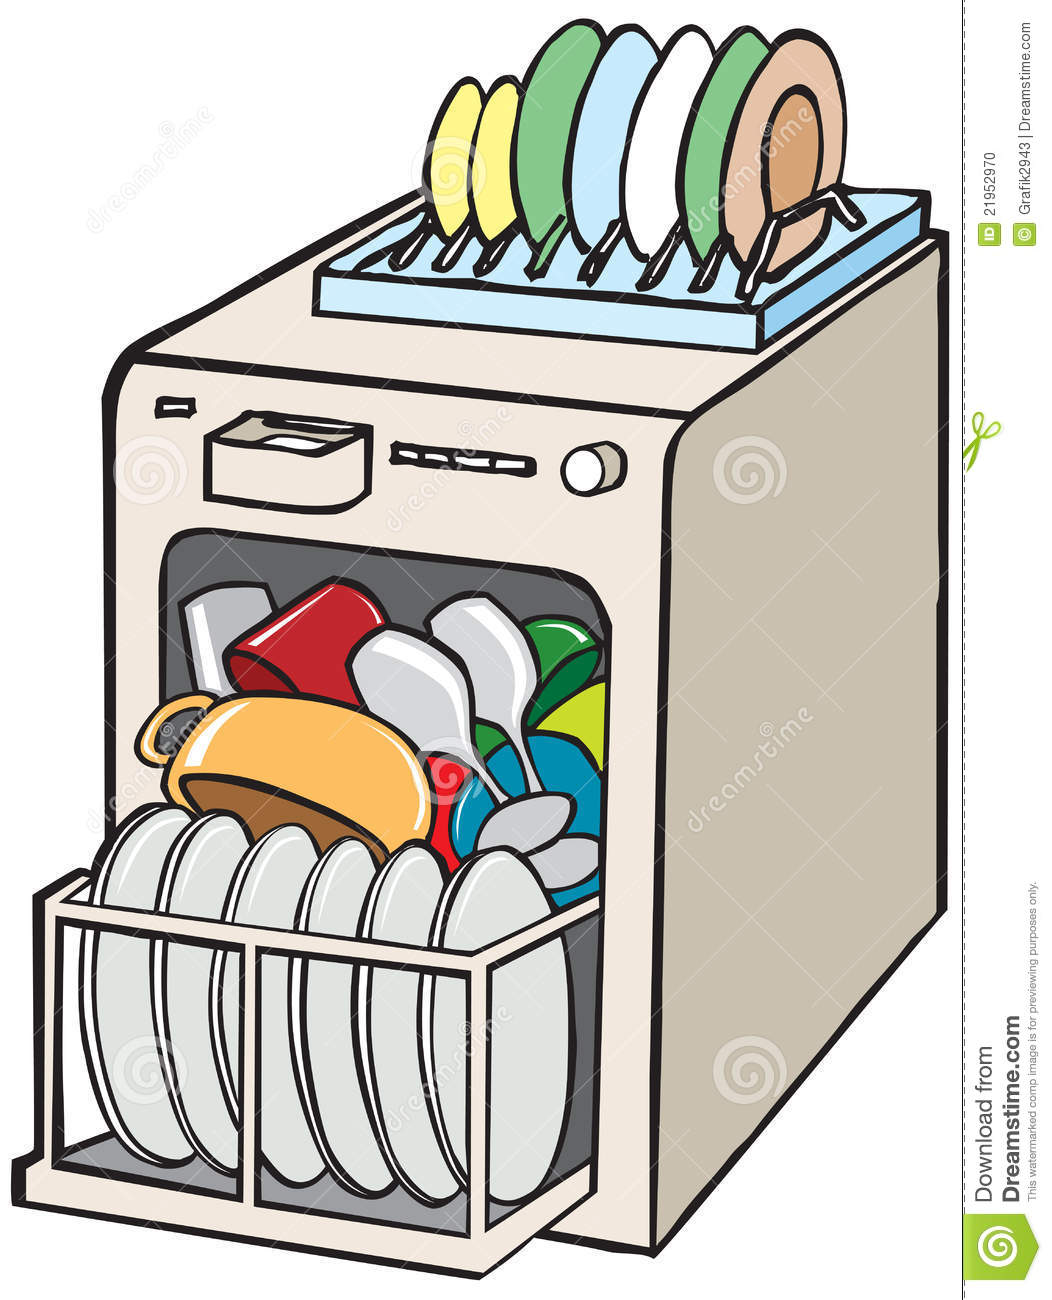 Dirty dishes in dishwasher clipart.